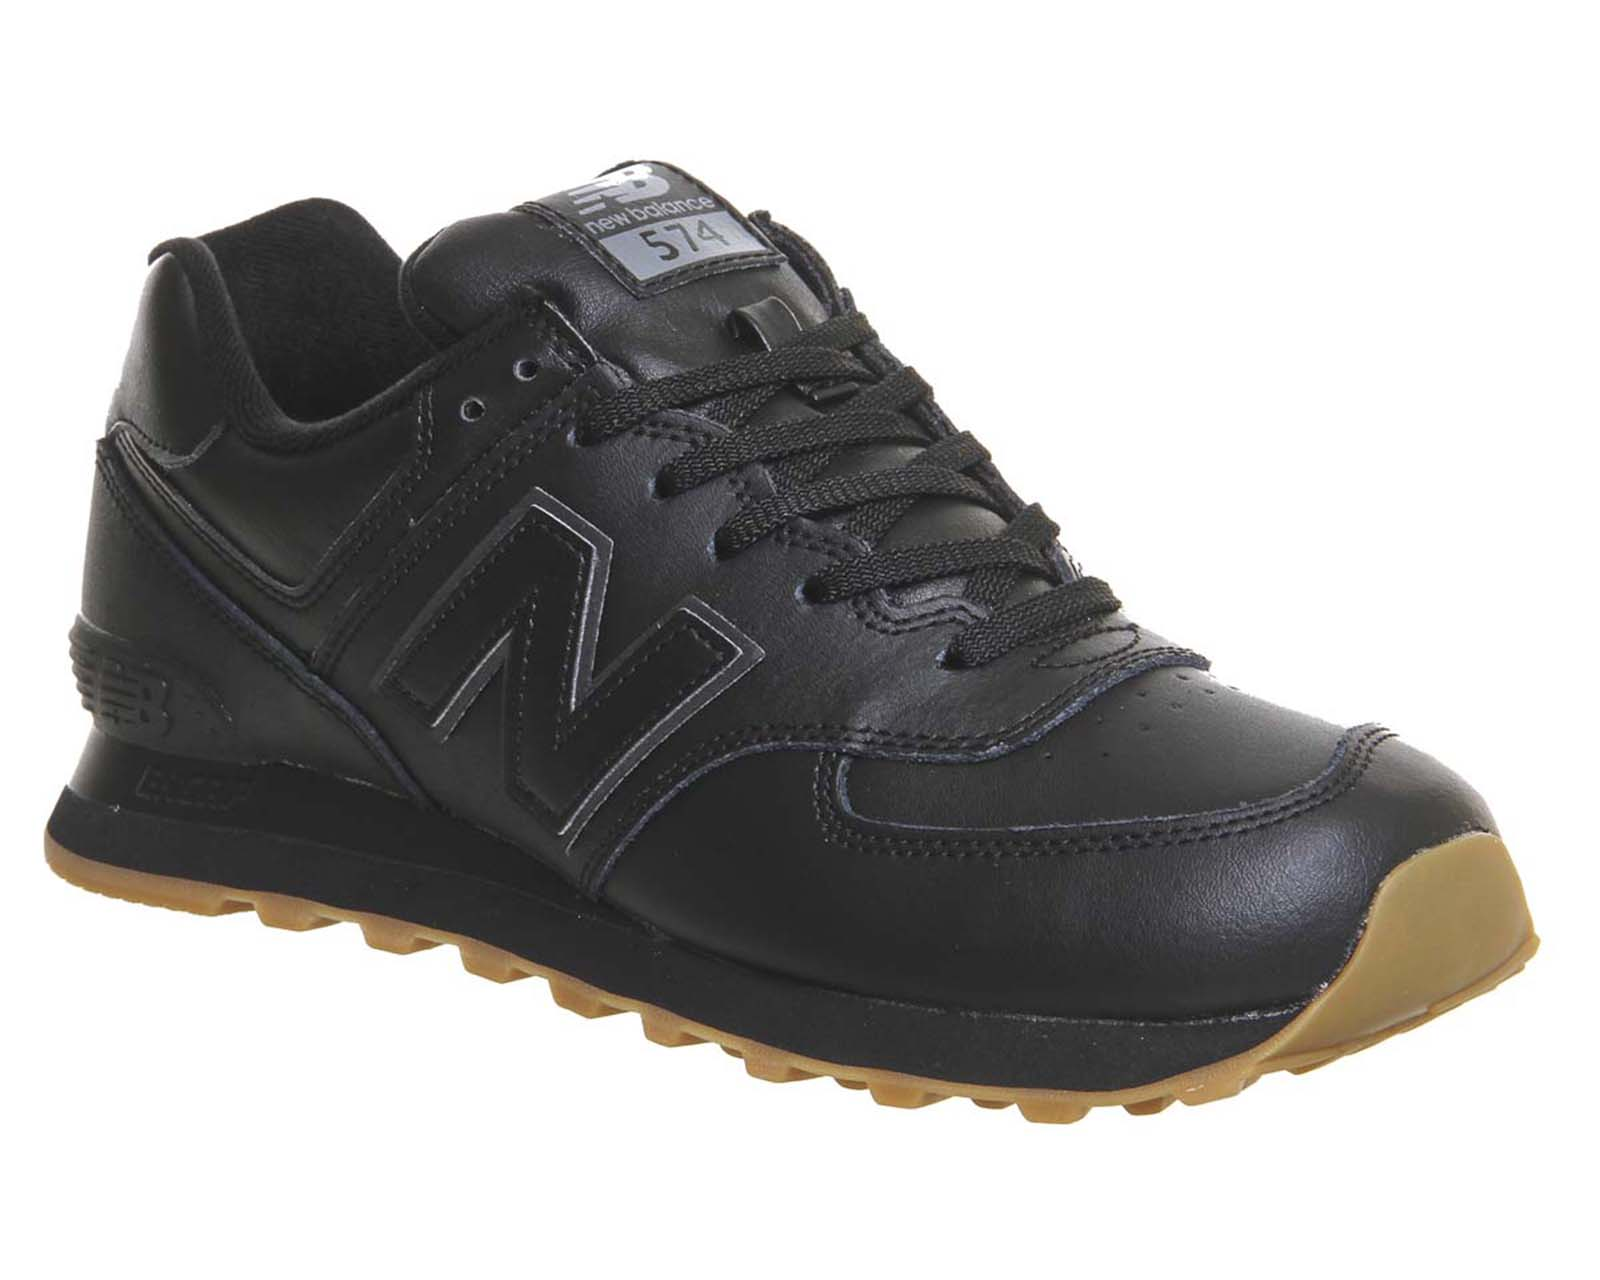 8aa34d37f New Balance New Balance M574 Black Leather Gum - Unisex Sports